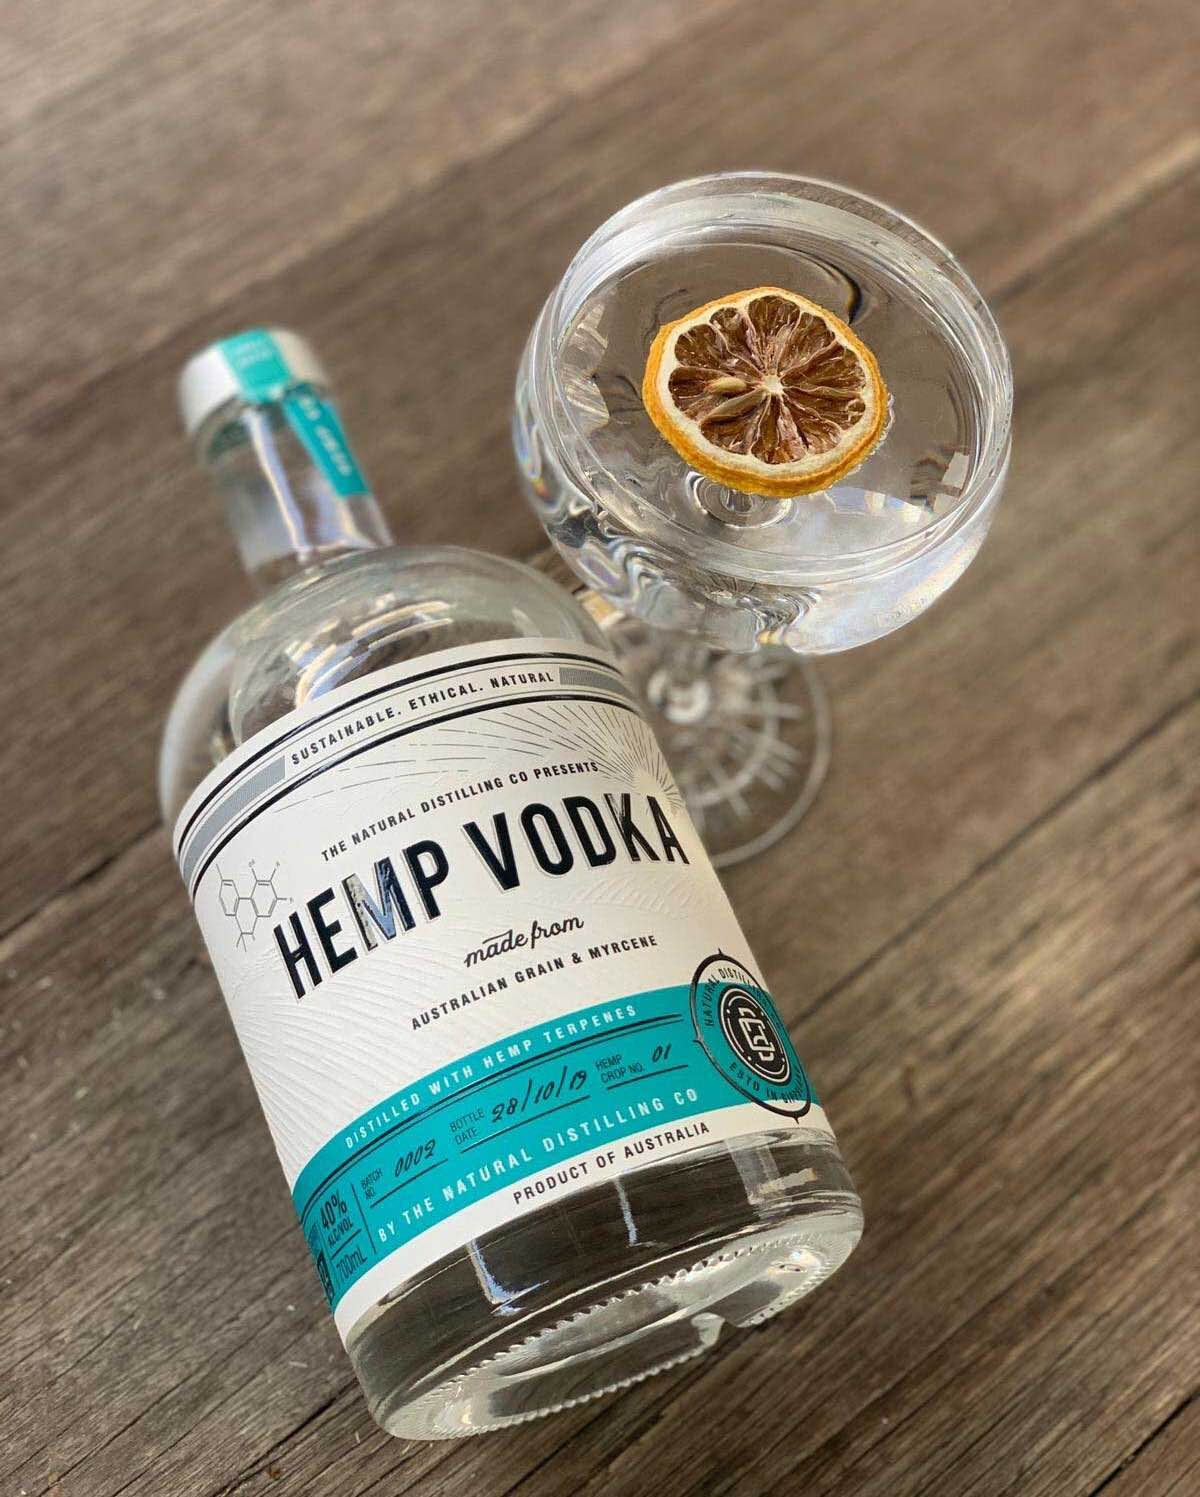 Bottle of hemp vodka with lemon